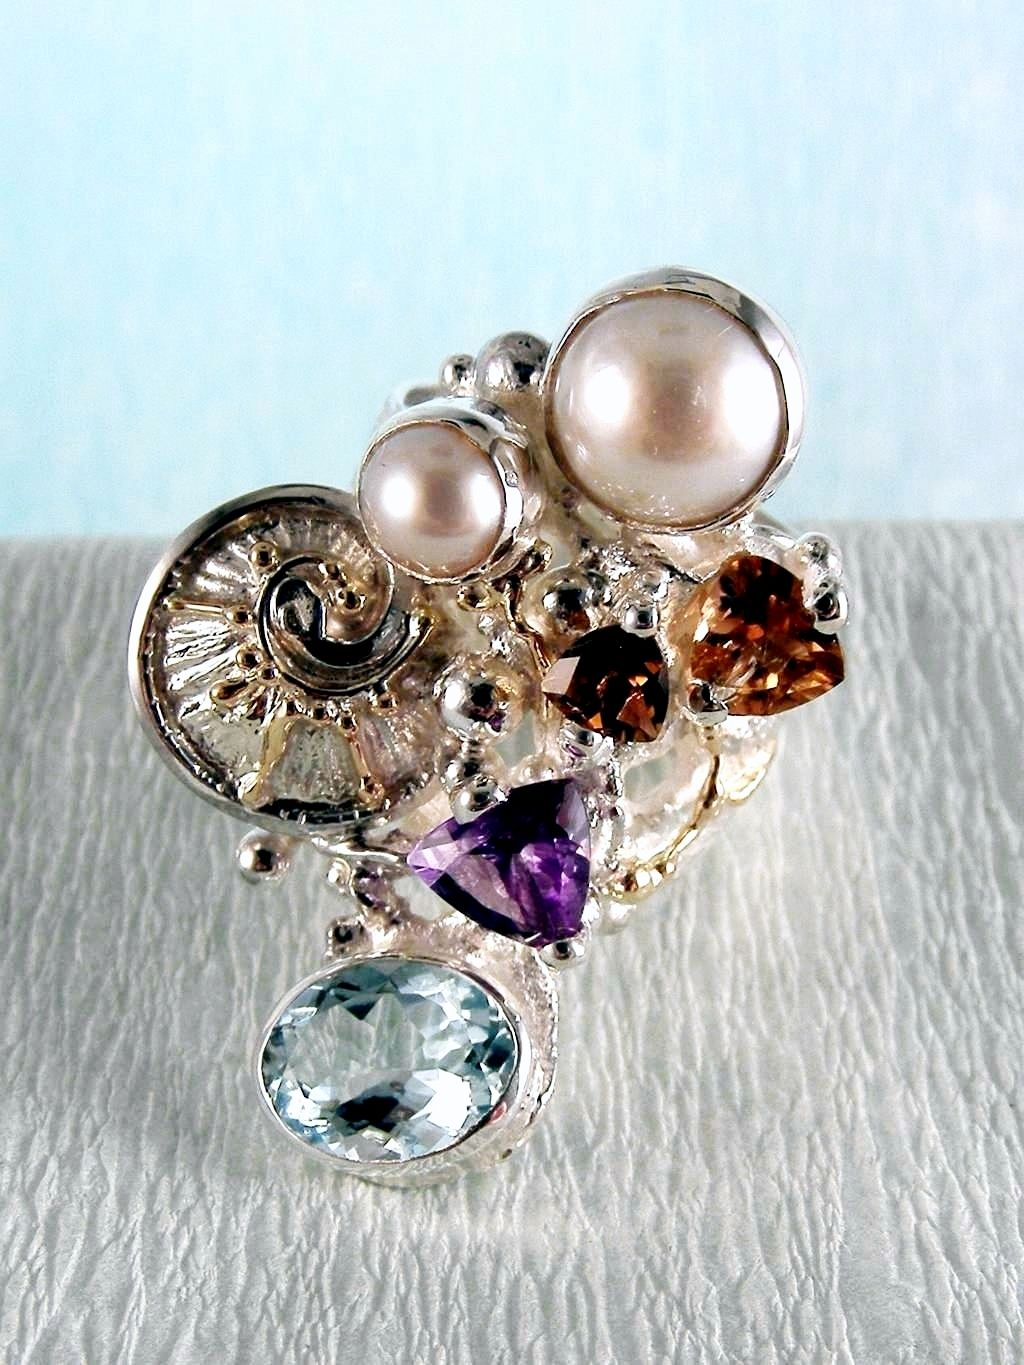 one of a kind jewellery, handmade artisan jewellery, mixed metal artisan jewellery, artisan jewellery with gemstones and pearls, Band #Ring 2050